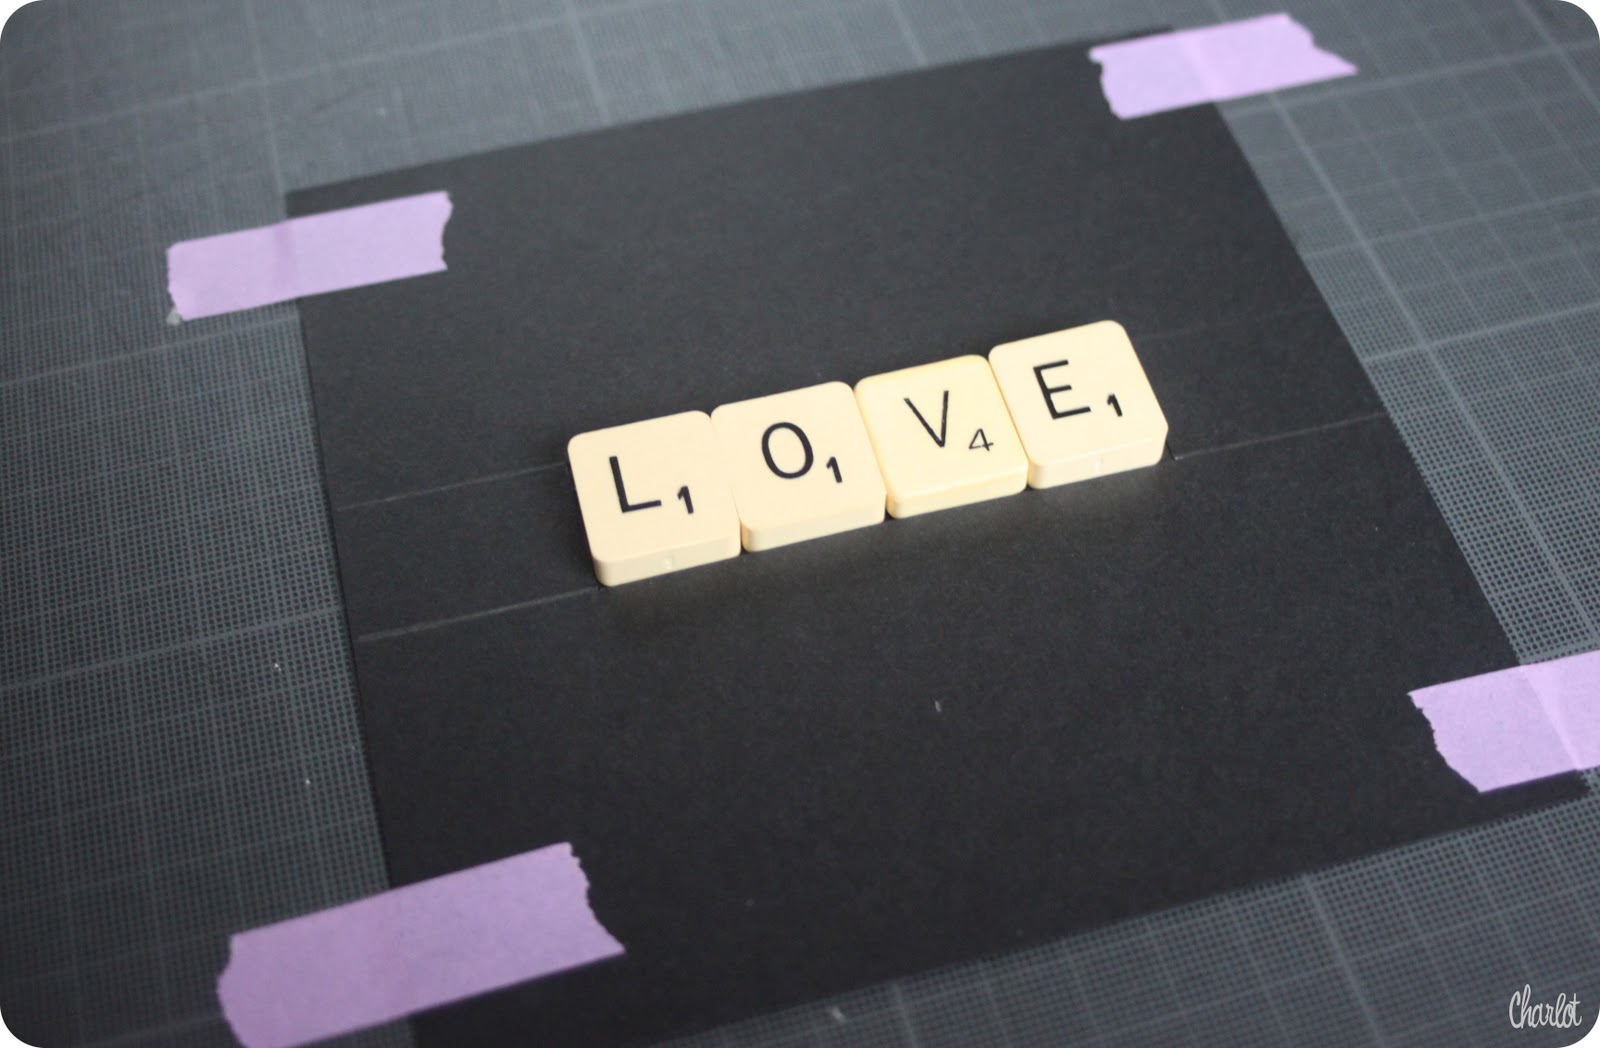 et puis la neige elle est trop molle tutoriel st valentin when love meets scrabble. Black Bedroom Furniture Sets. Home Design Ideas